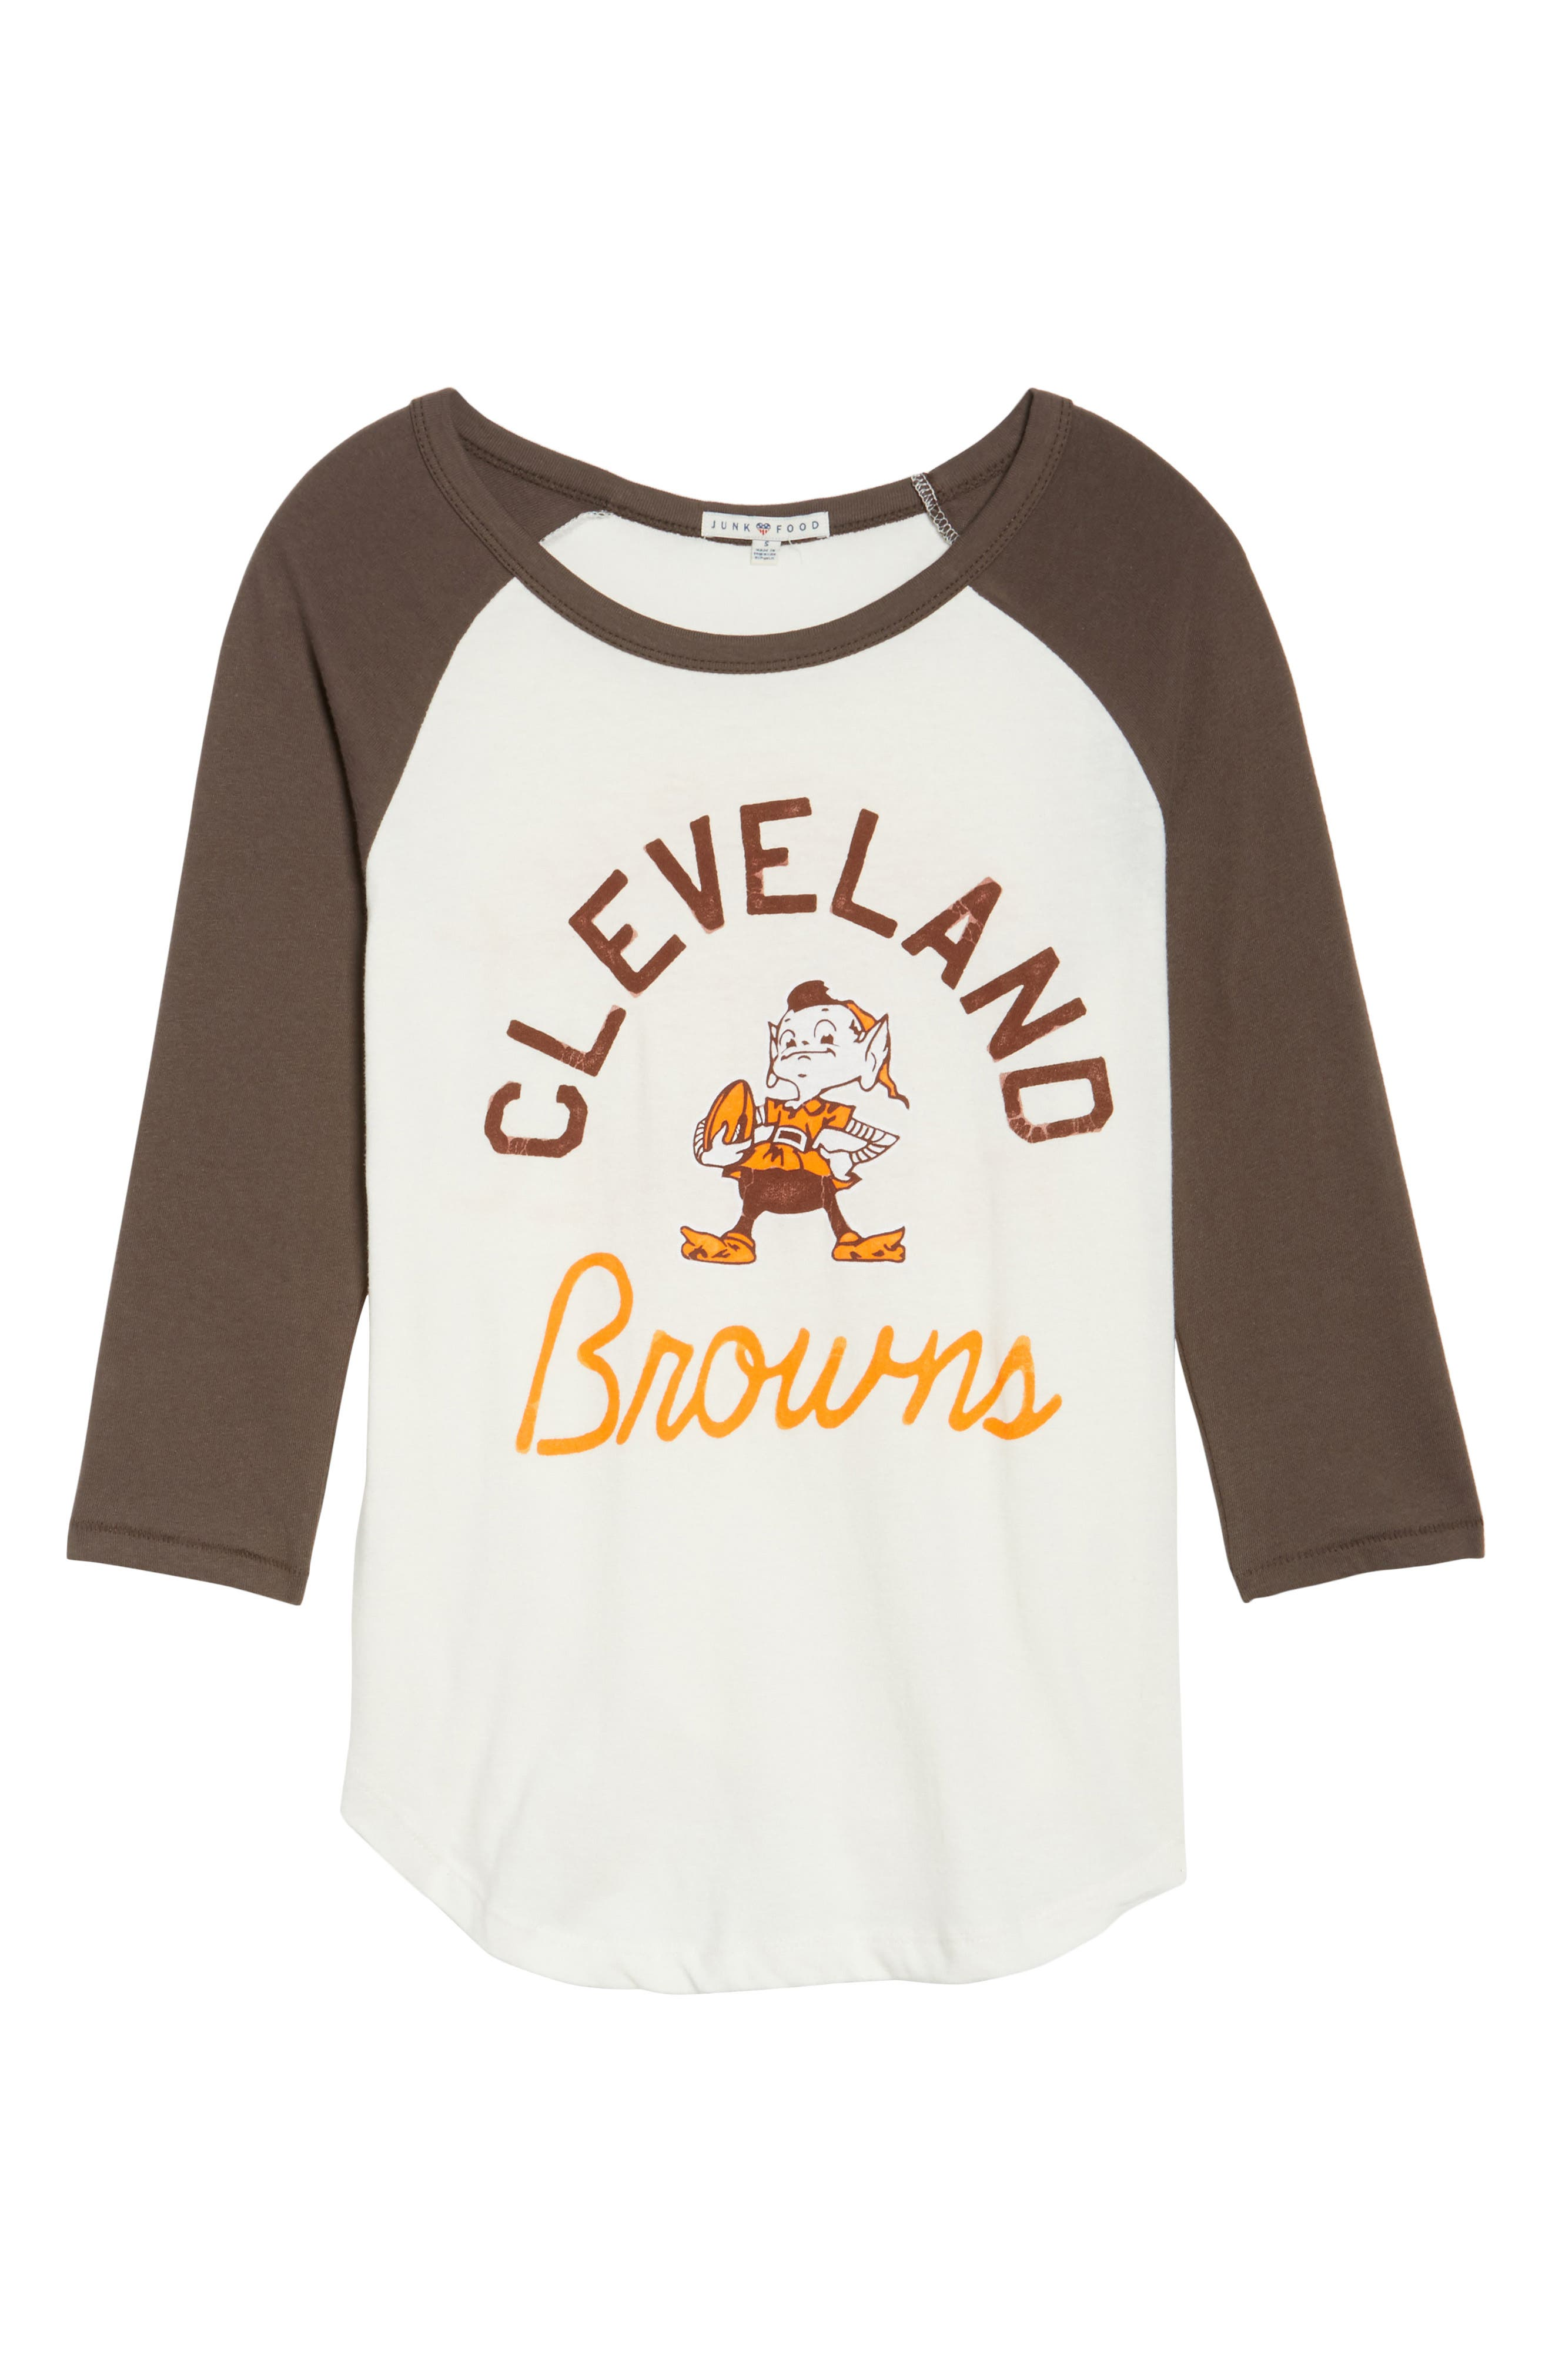 NFL Cleveland Browns Raglan Tee,                             Alternate thumbnail 6, color,                             189